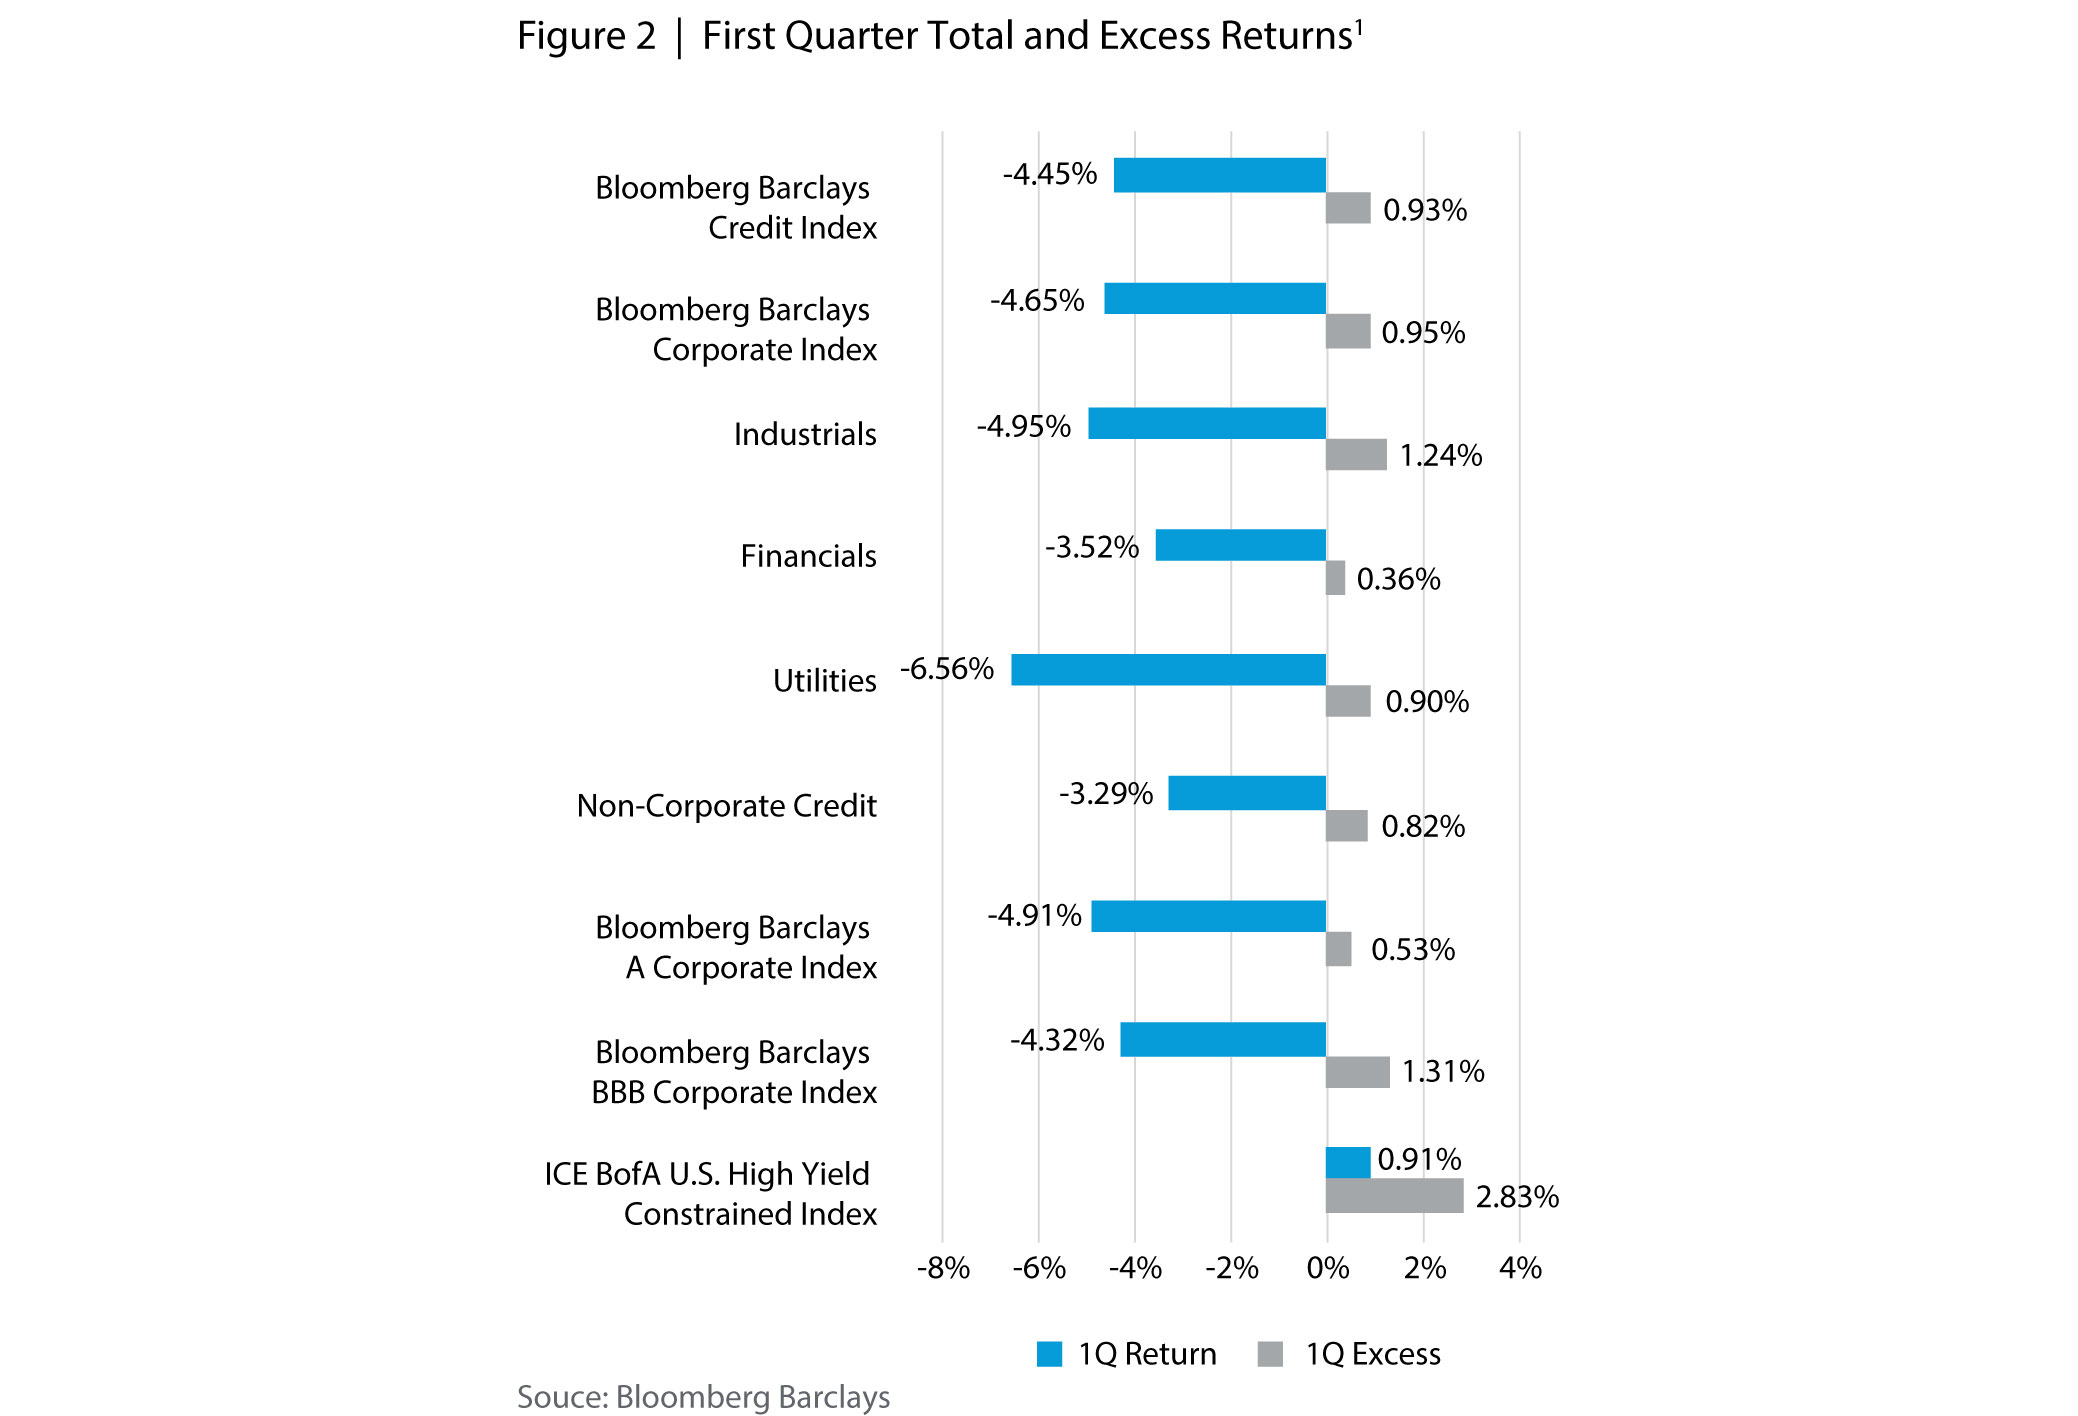 First Quarter Total and Excess Returns